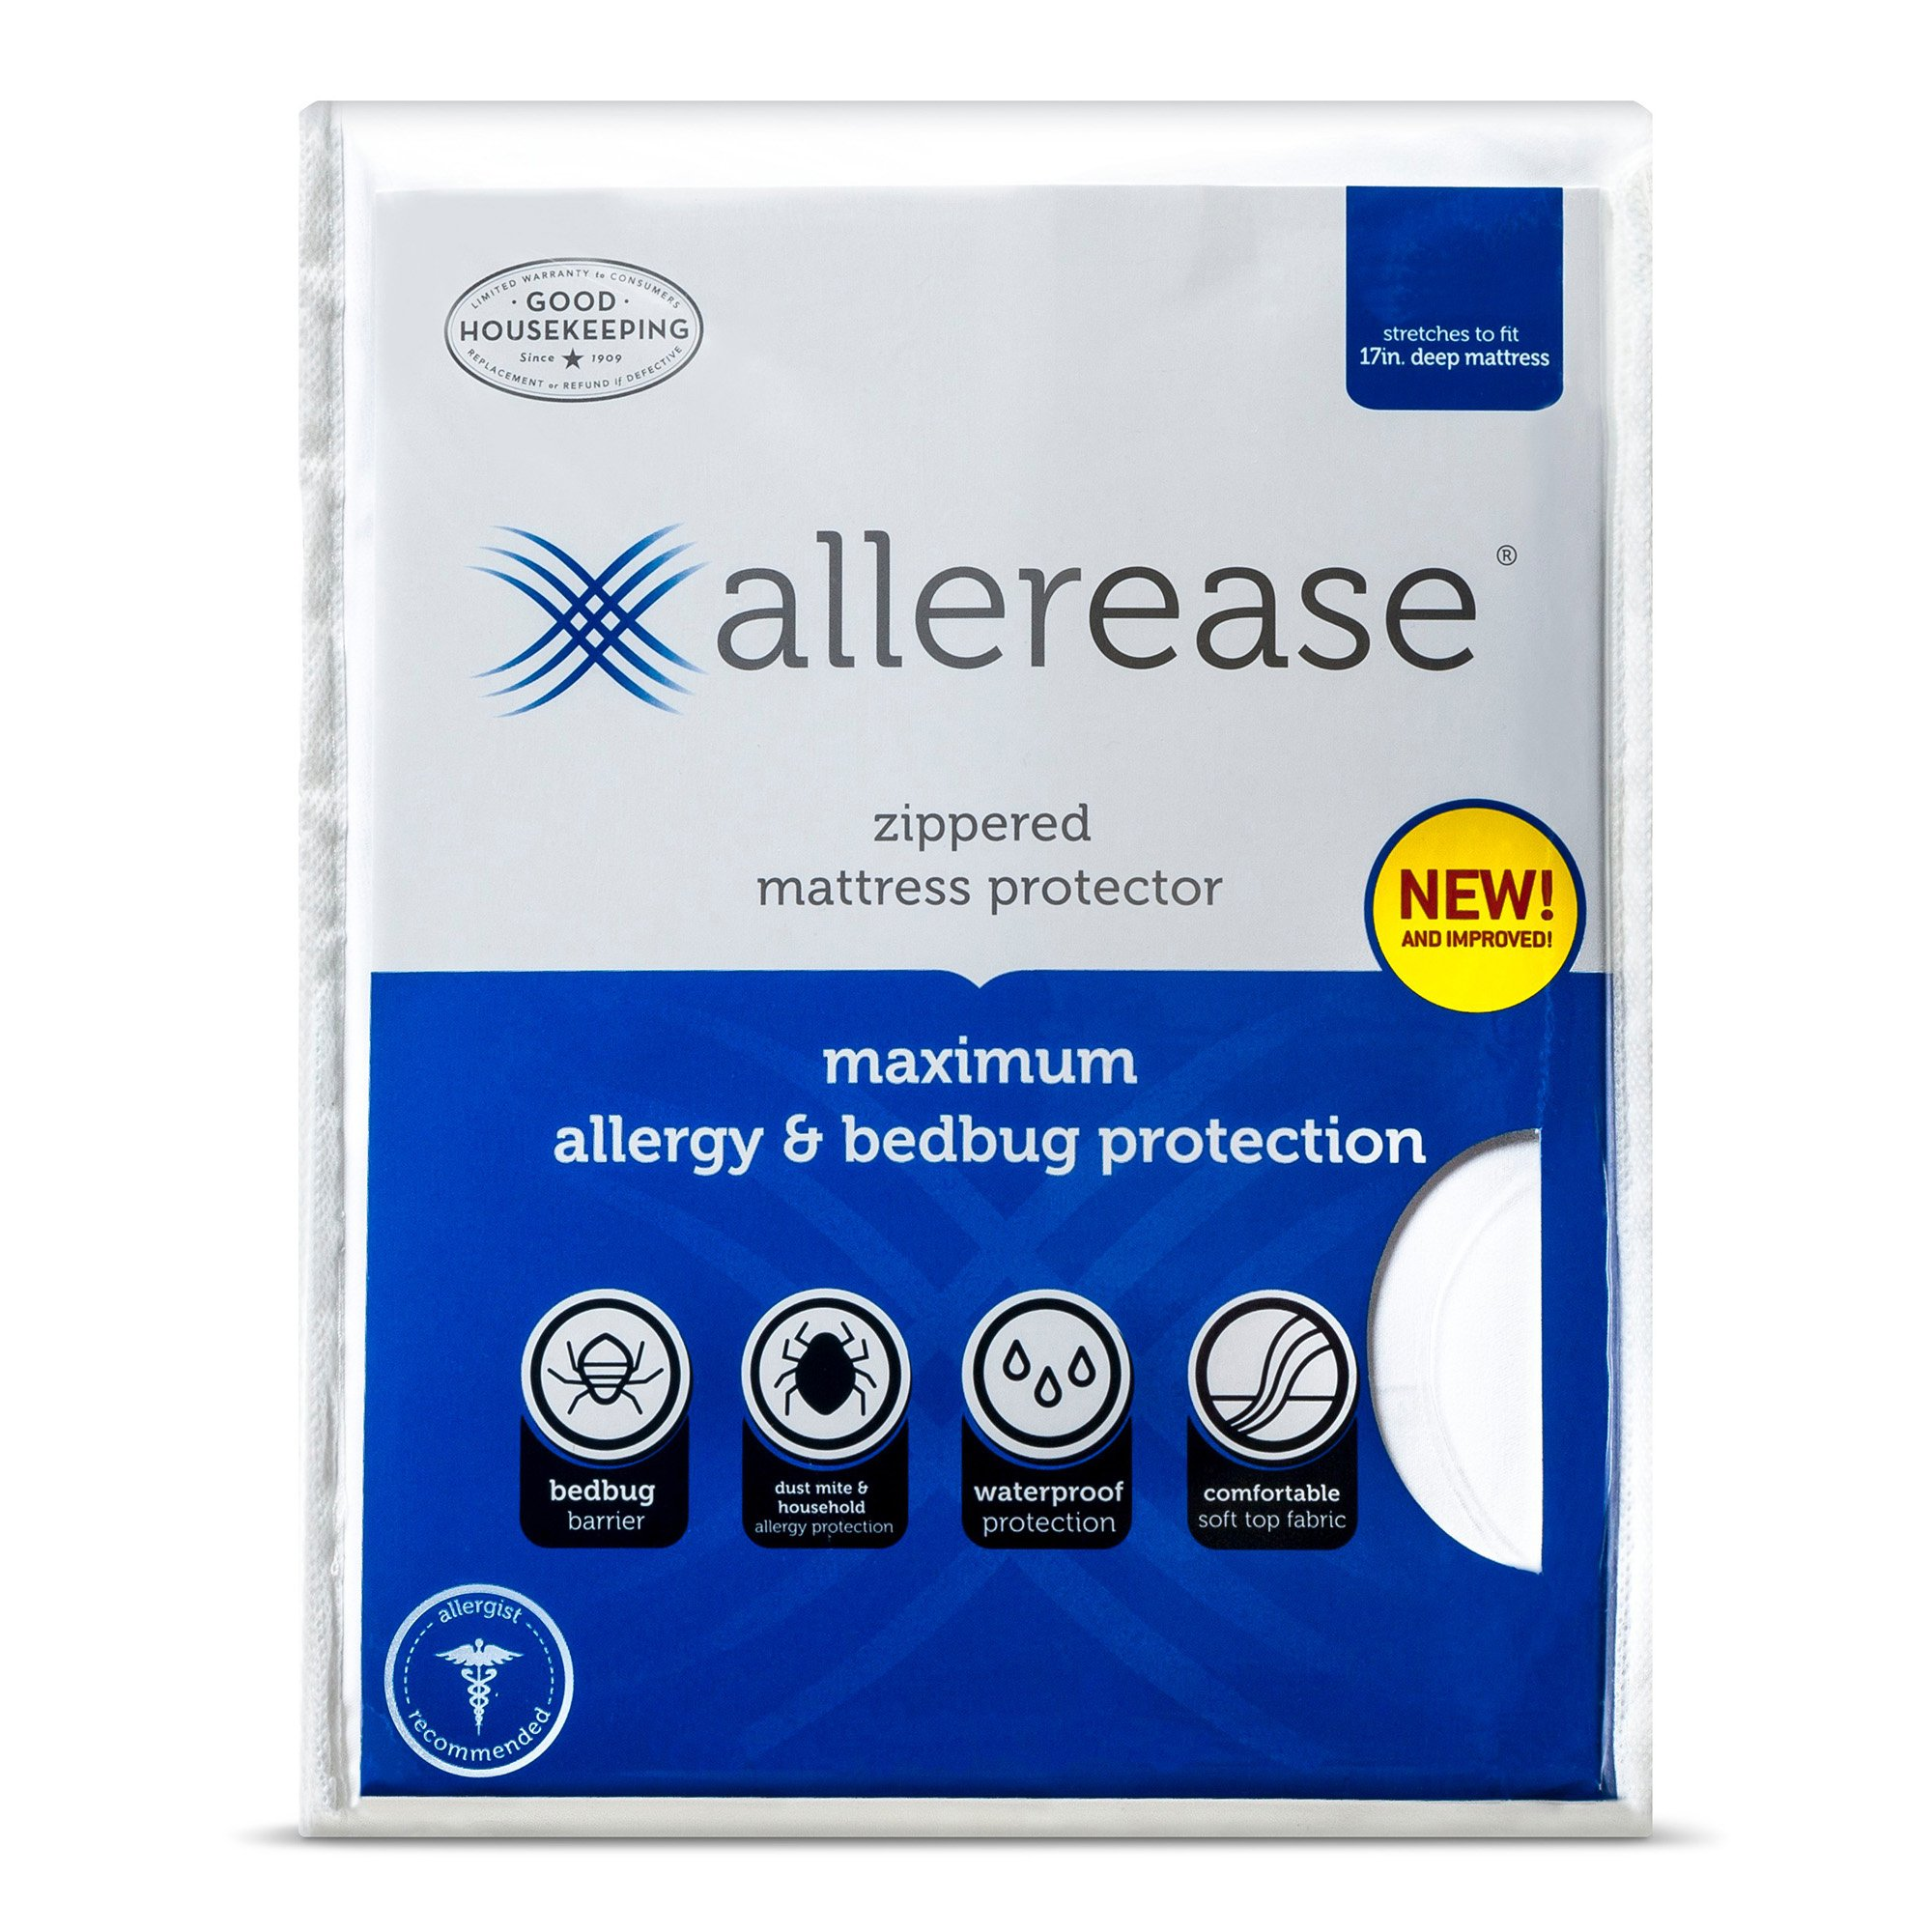 AllerEase Maximum Allergy and Bed Bug Waterproof Zippered Mattress Protector - Allergist Recommended to Prevent Collection of Dust Mites and Other Allergens, Vinyl Free & Hypoallergenic, Queen Sized by Aller-Ease